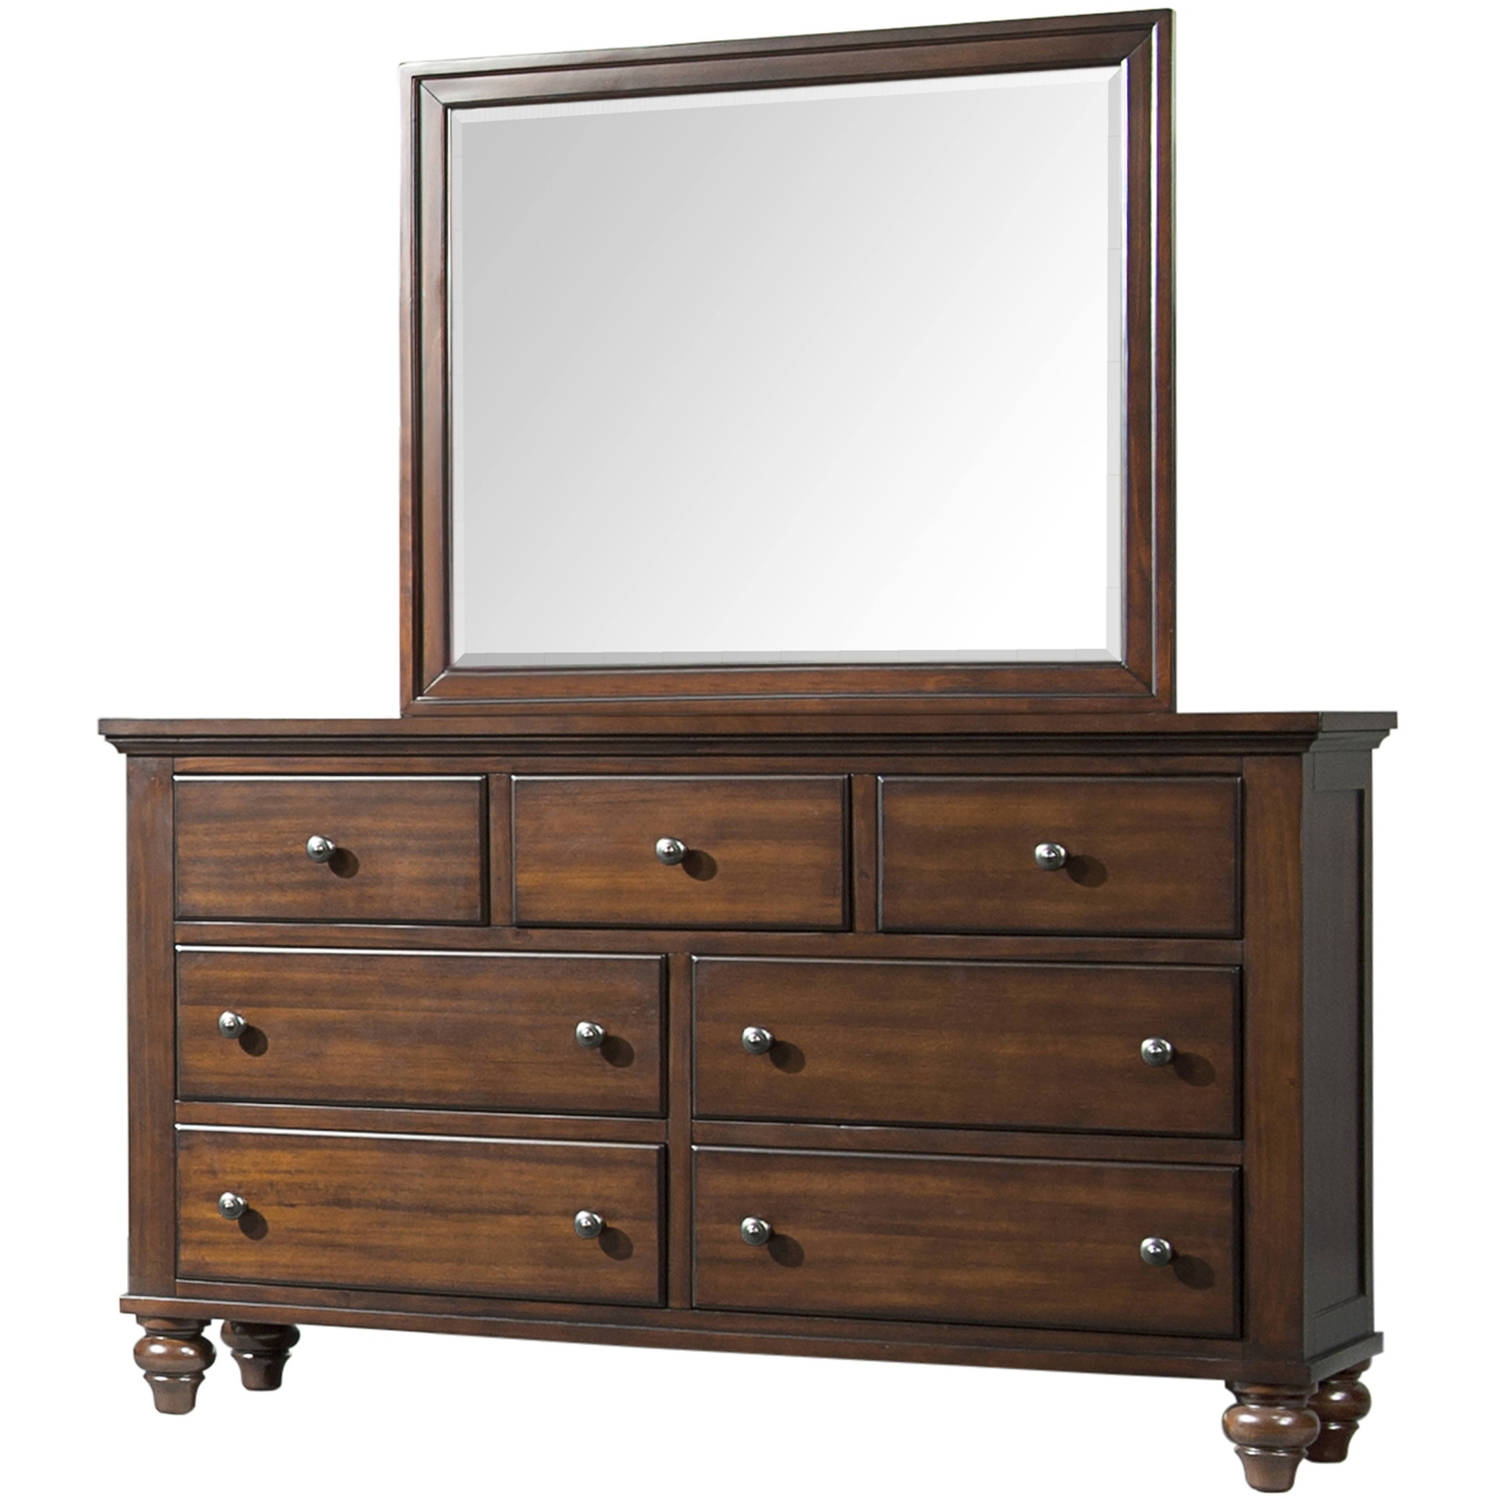 Picket House Furnishings Channing Dresser and Mirror Set